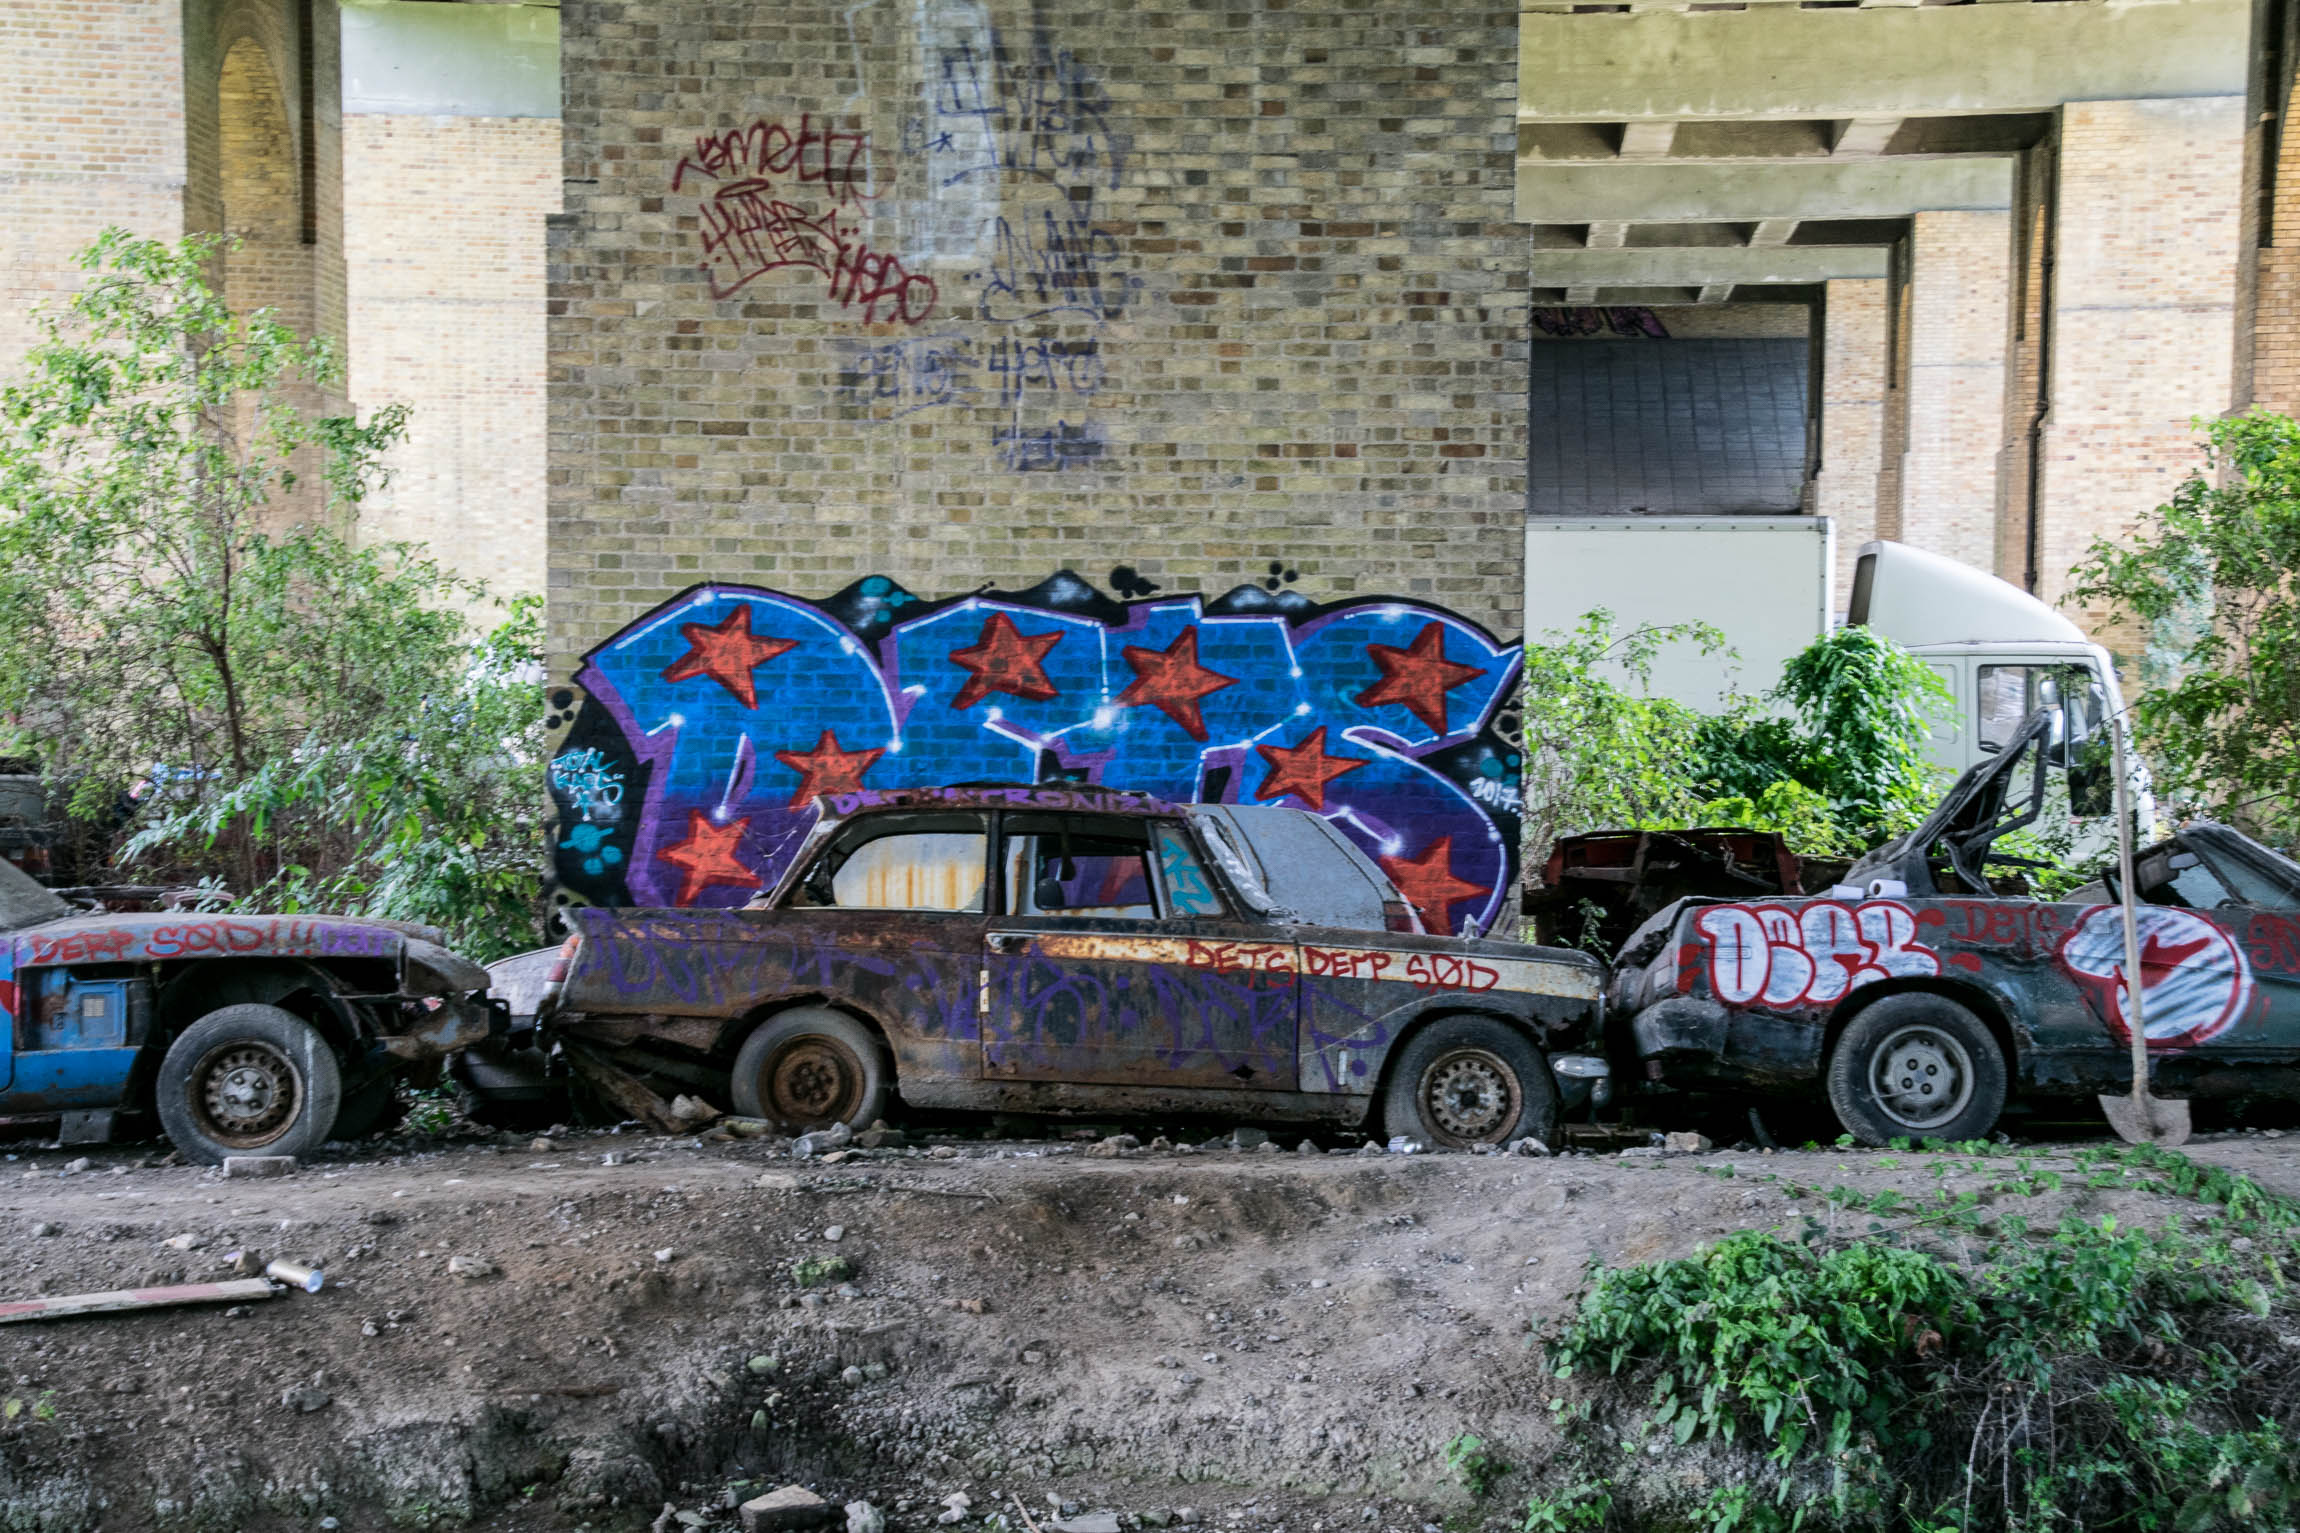 Flytipper's Cars - A trip back to specifically look at the cars